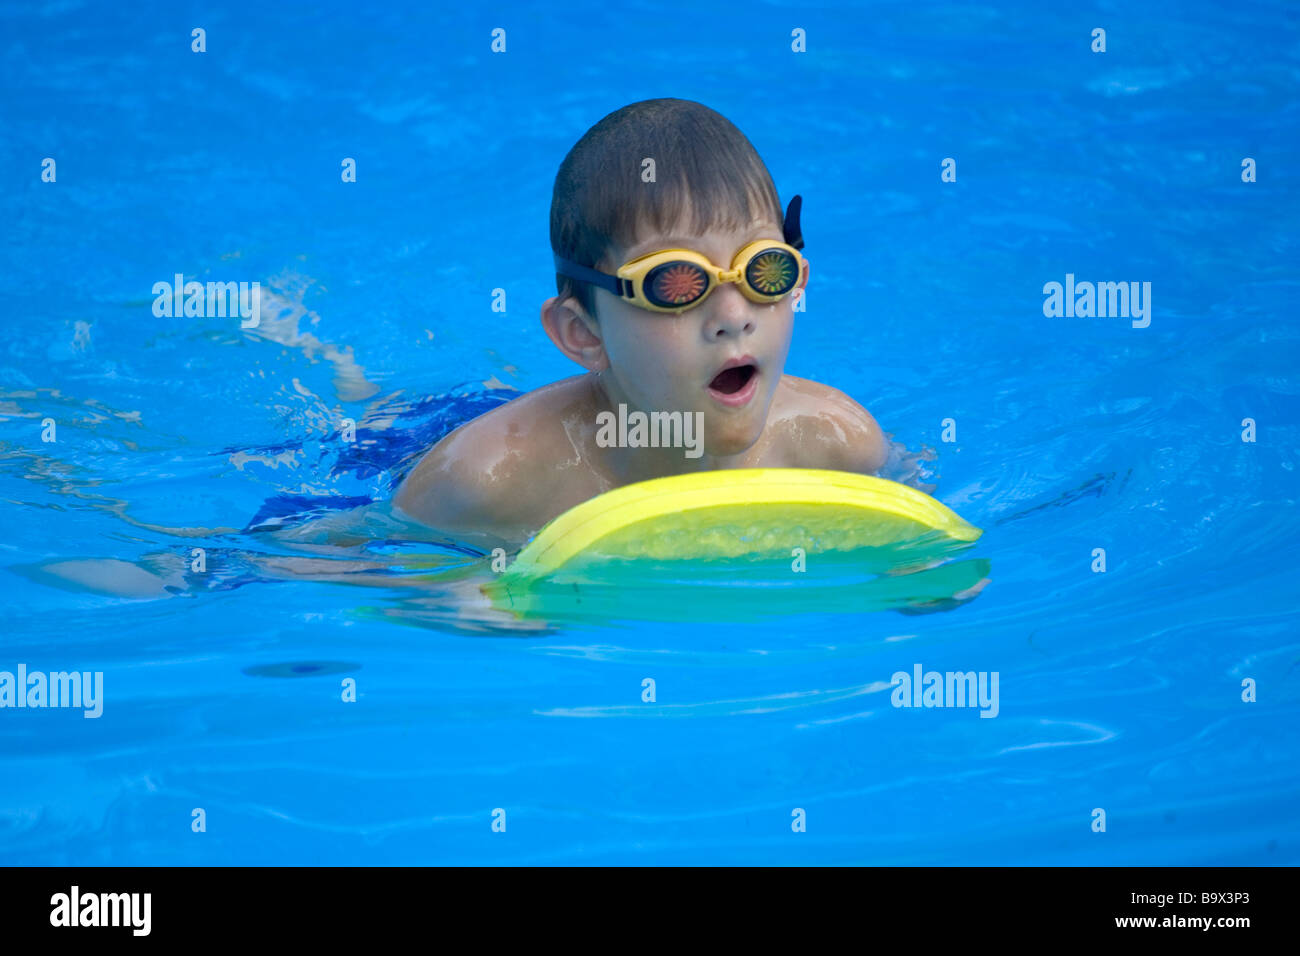 9 year old boy swimming in pool - Stock Image